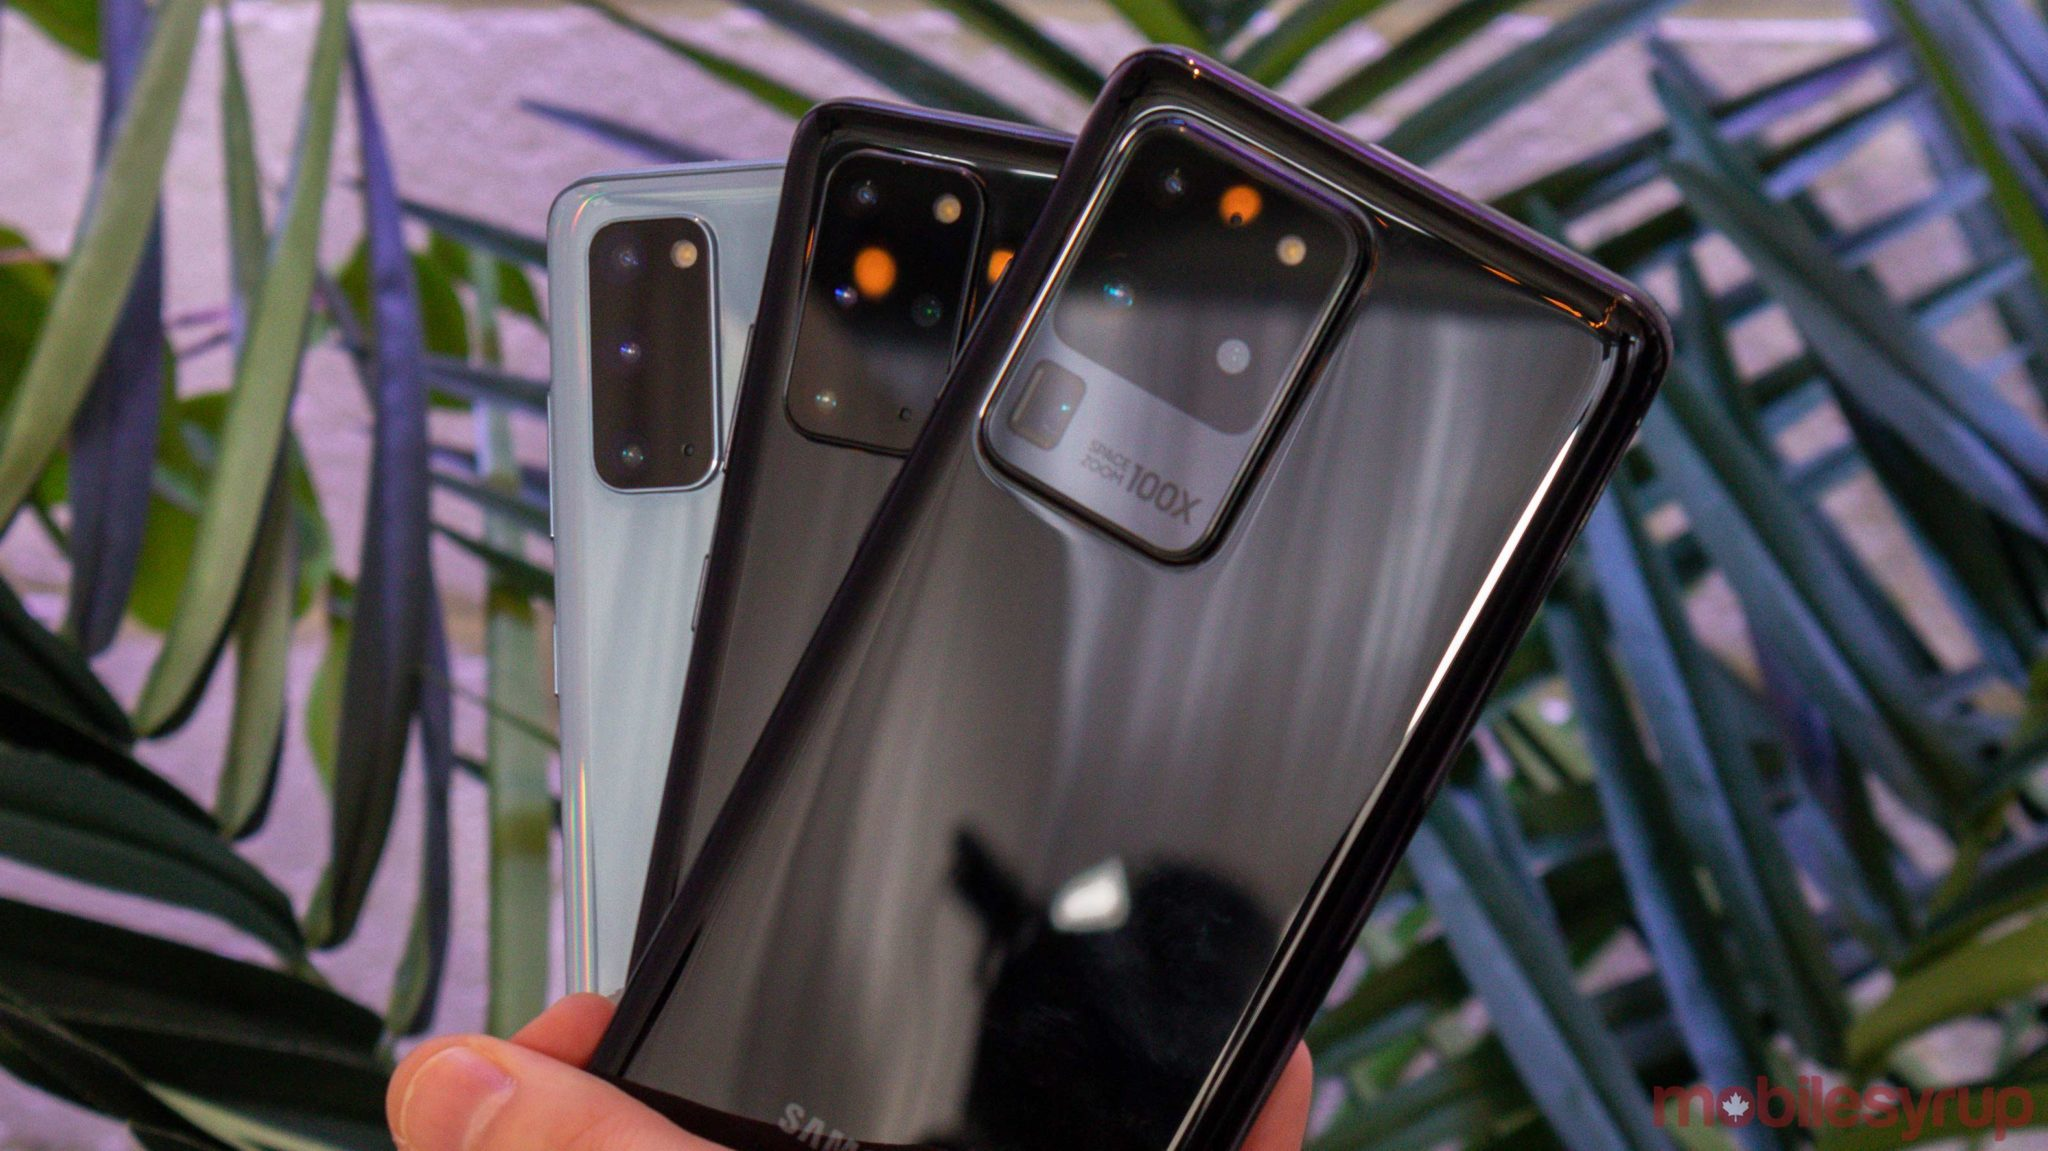 Samsung Galaxy S20 switches to 60Hz when battery gets low and in some apps